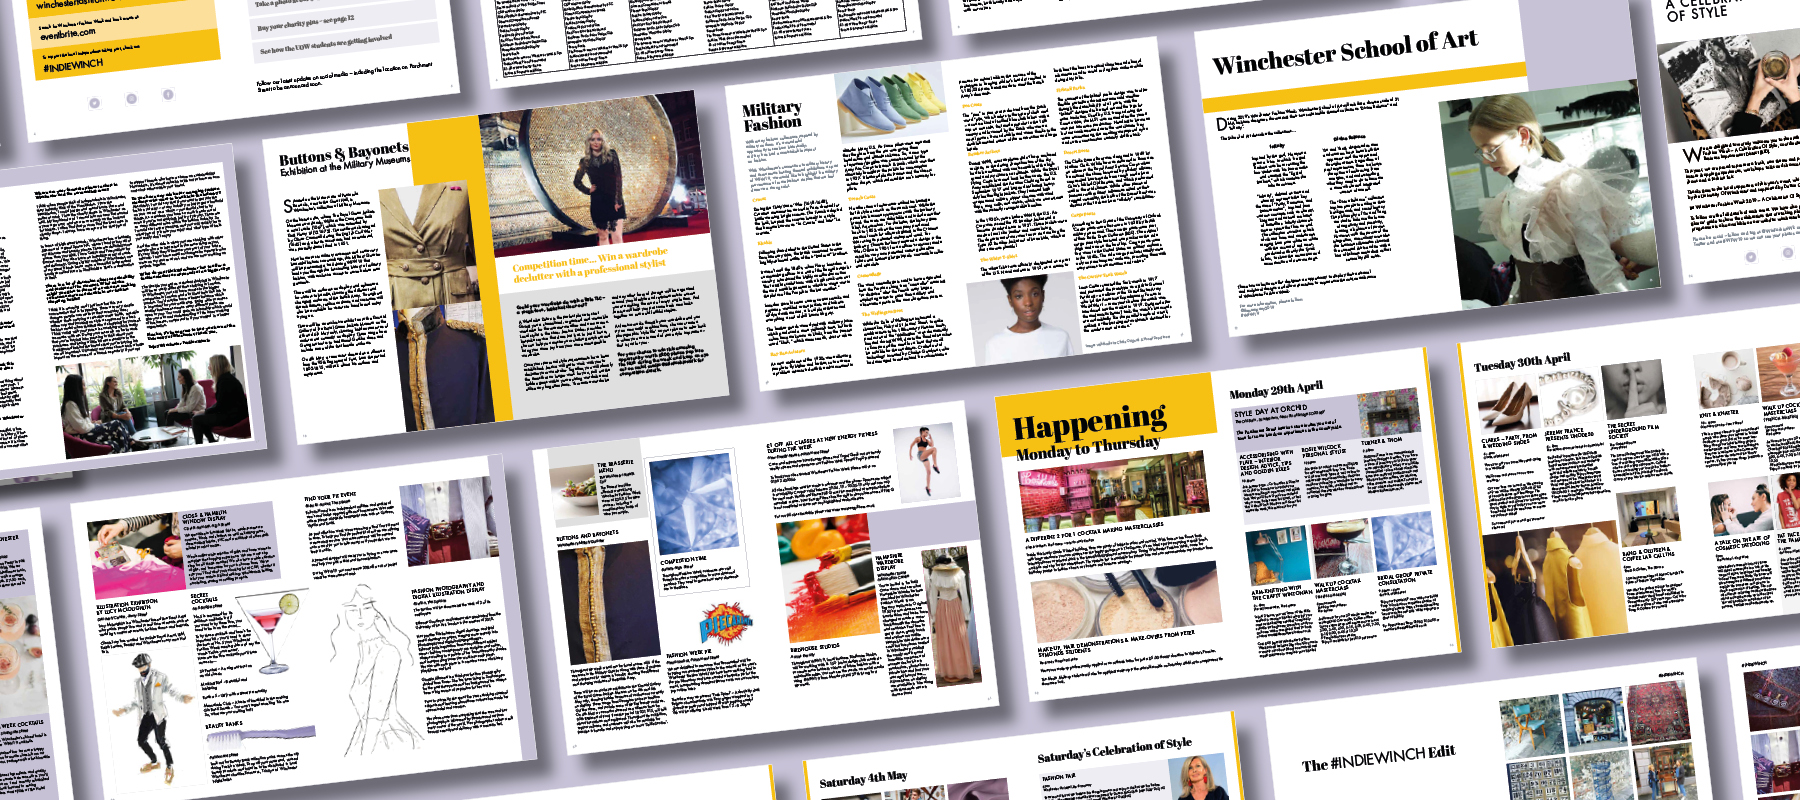 A collection of the spreads in the magazine